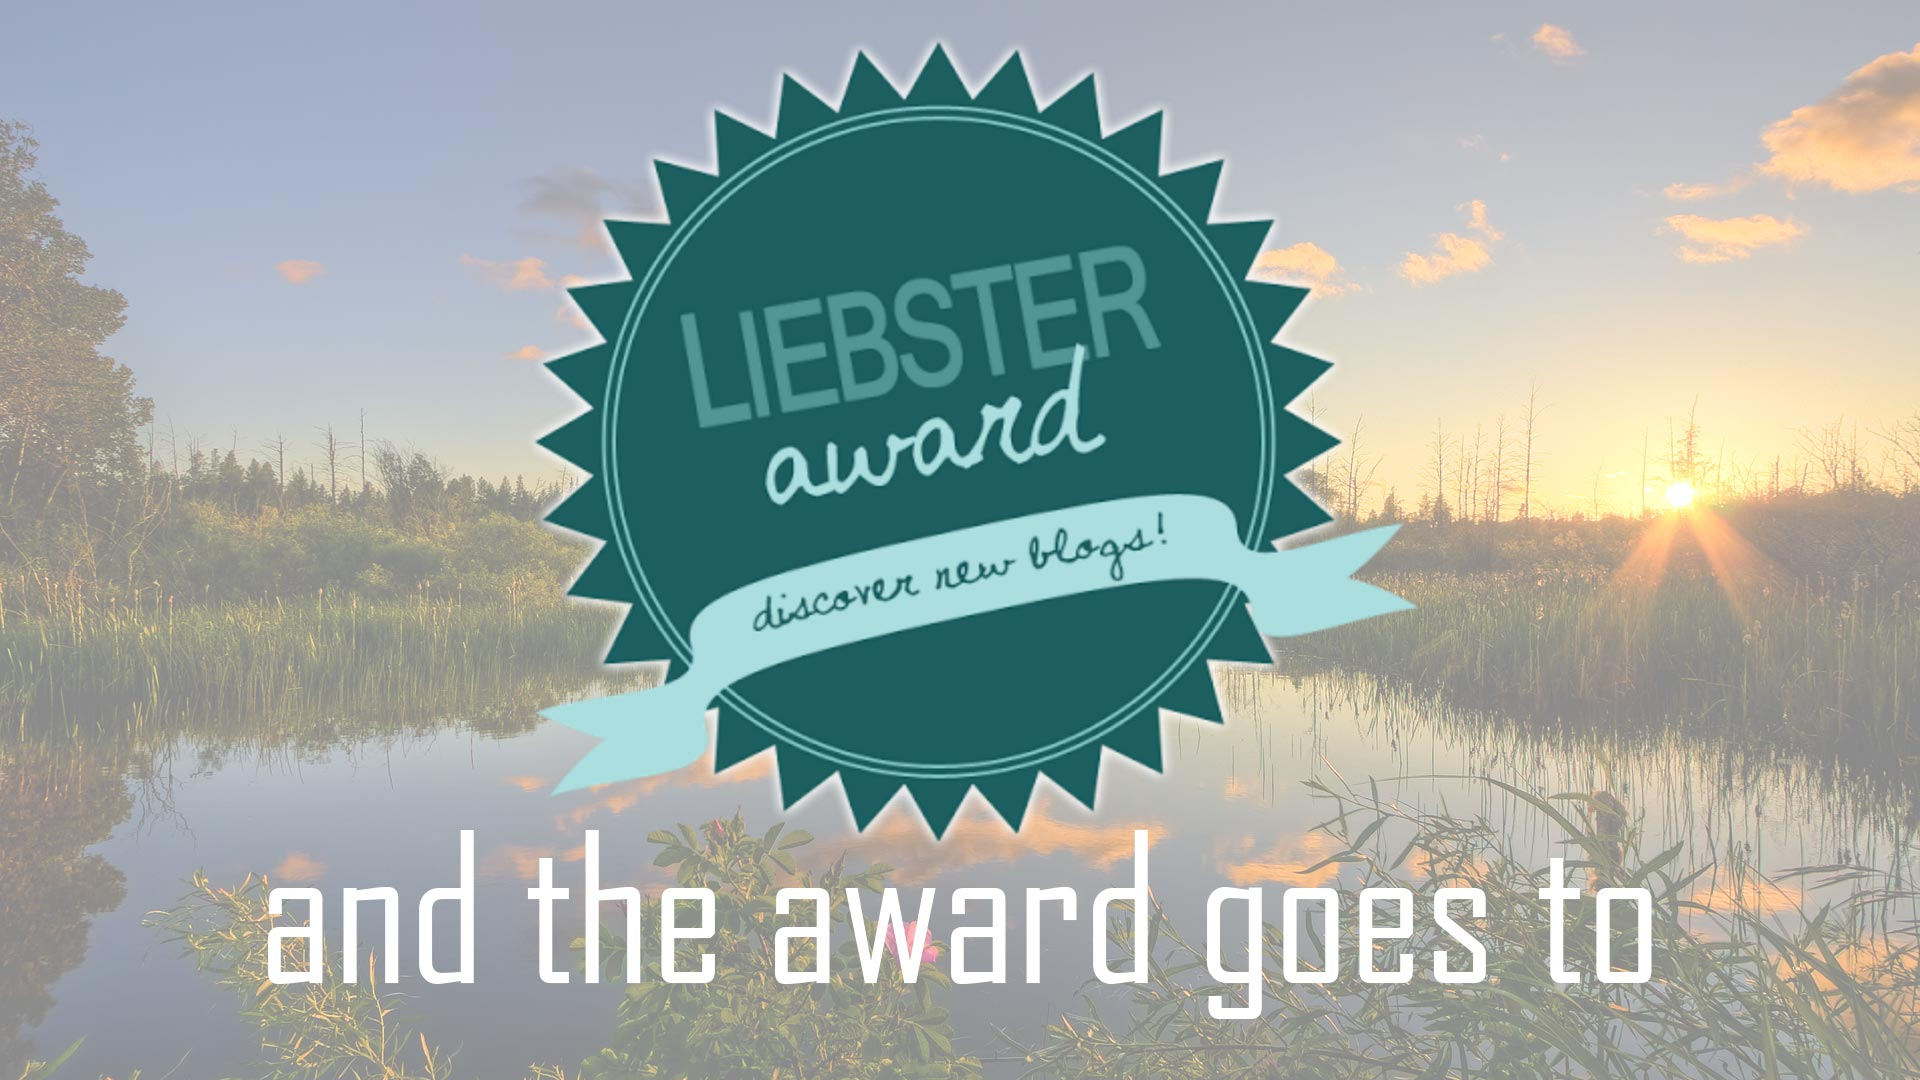 liebster awards - comunica o muere